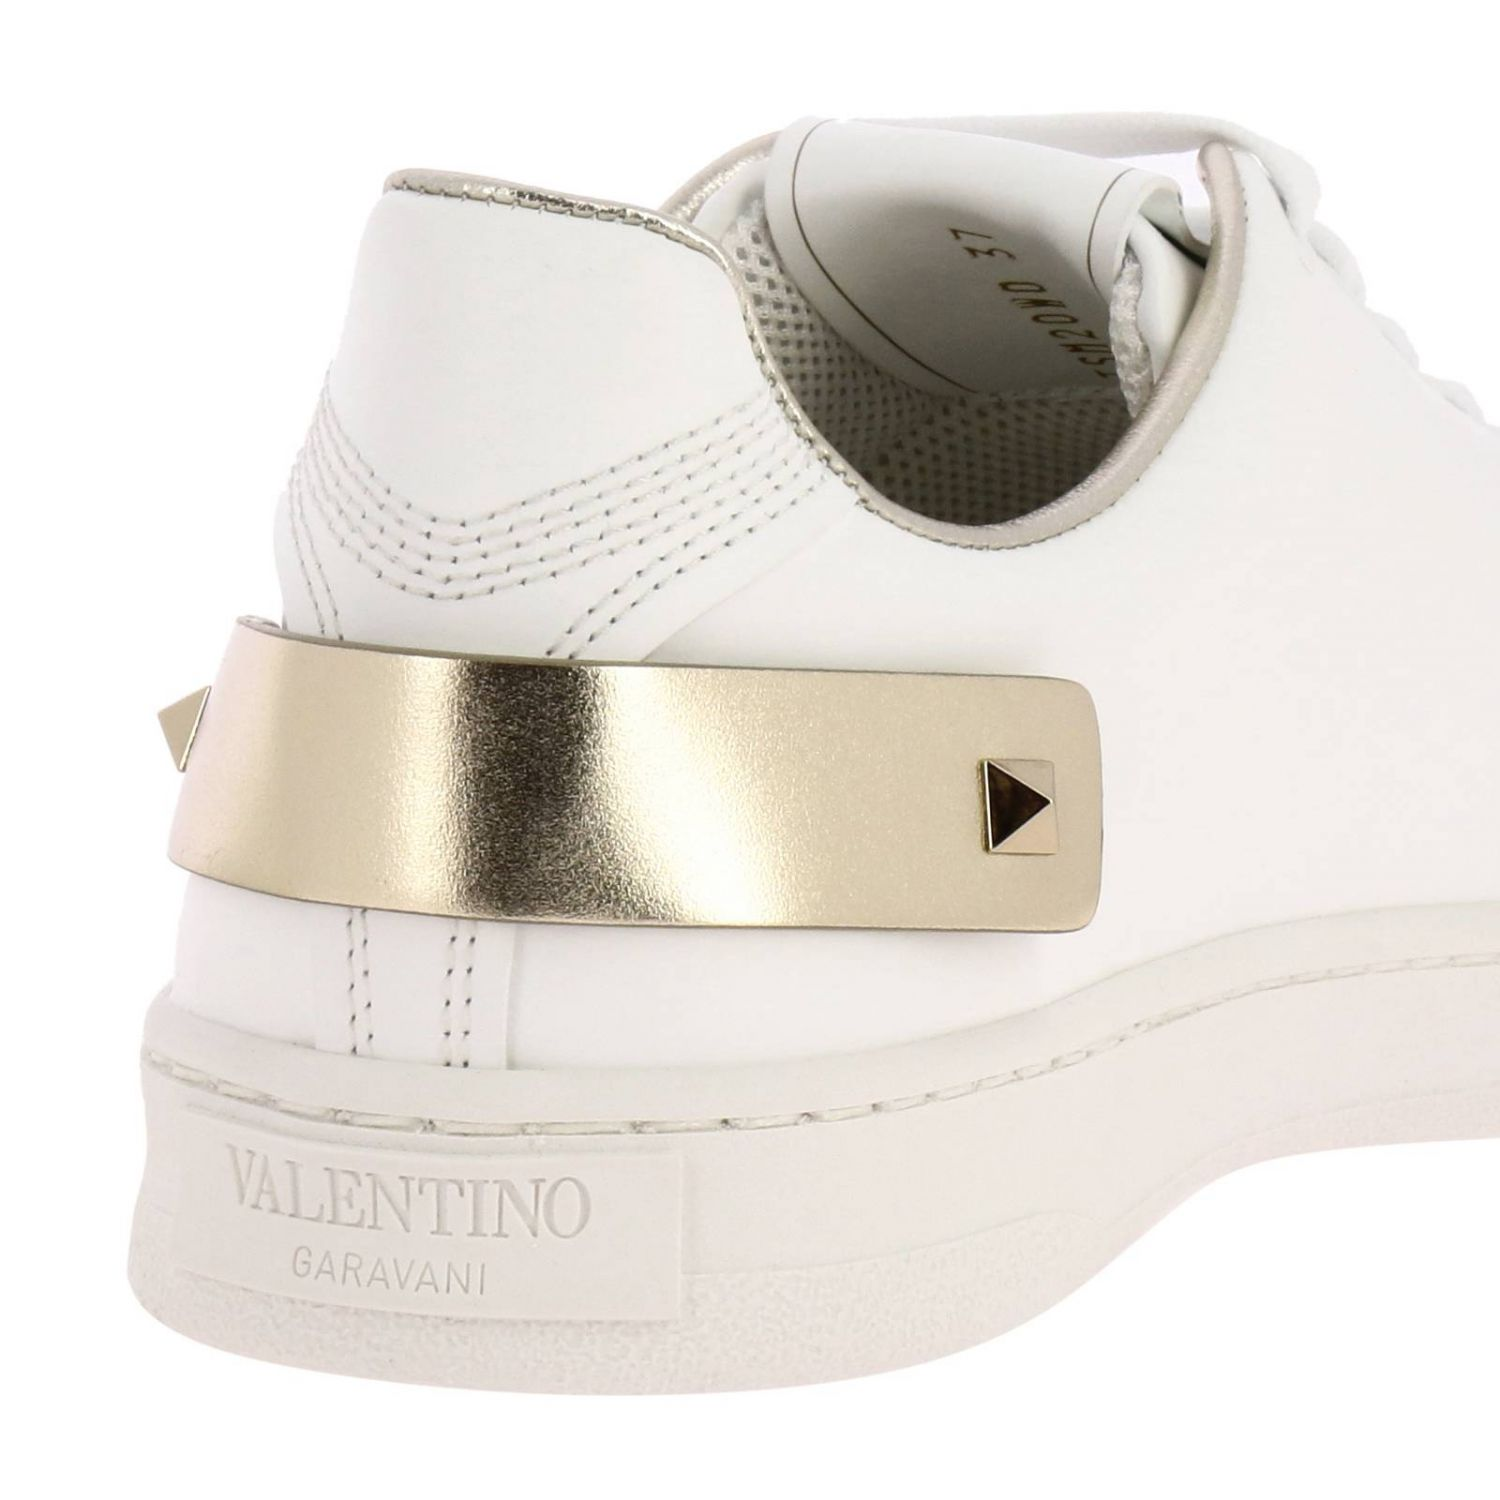 Valentino Garavani Backnet leather sneakers with micro perforated logo white 4